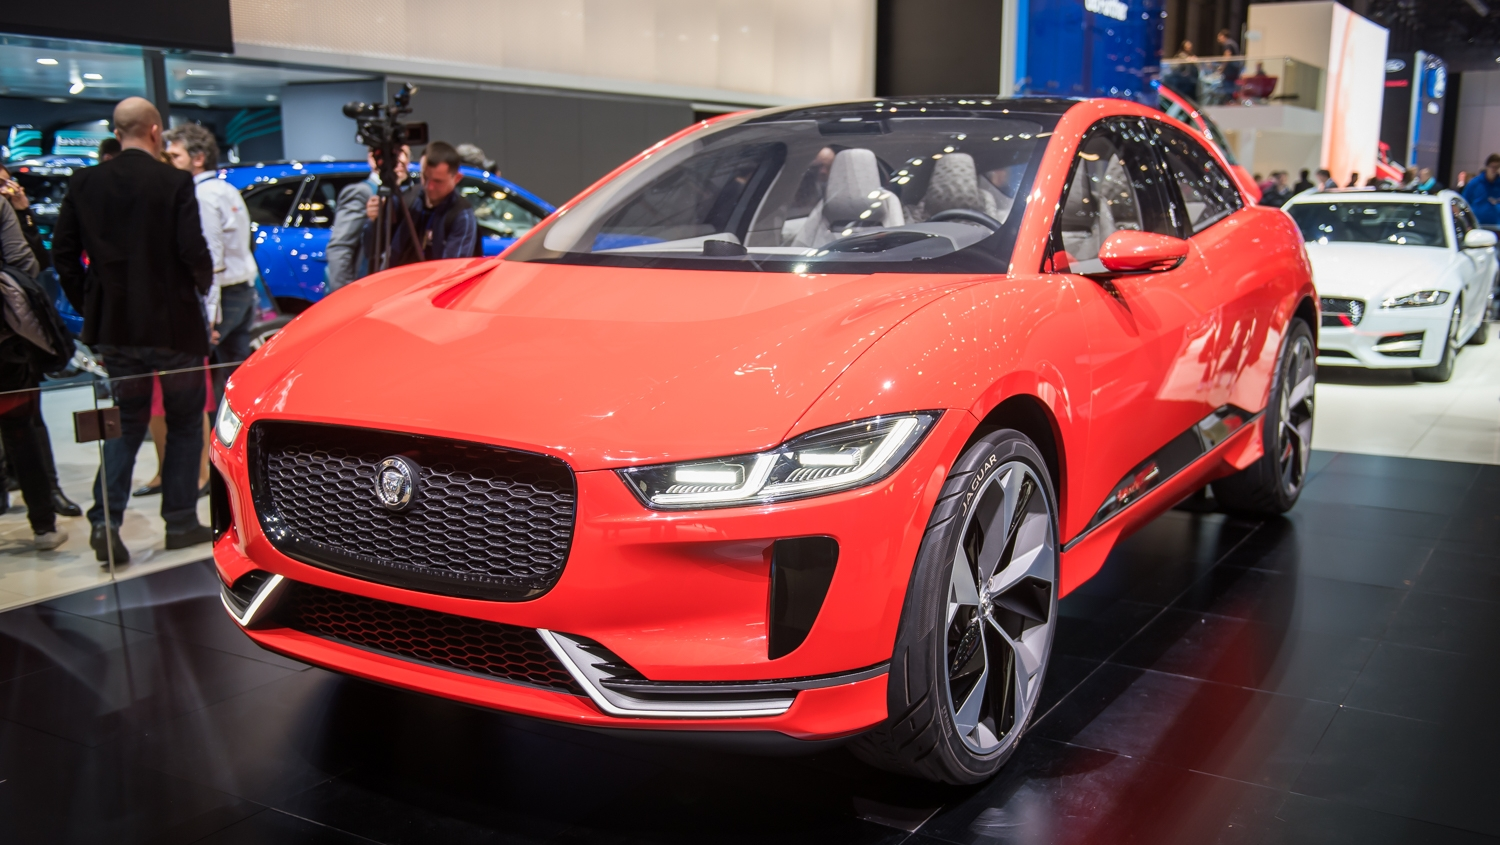 2016 Jaguar I-Pace Concept Gallery 709783   Top Speed